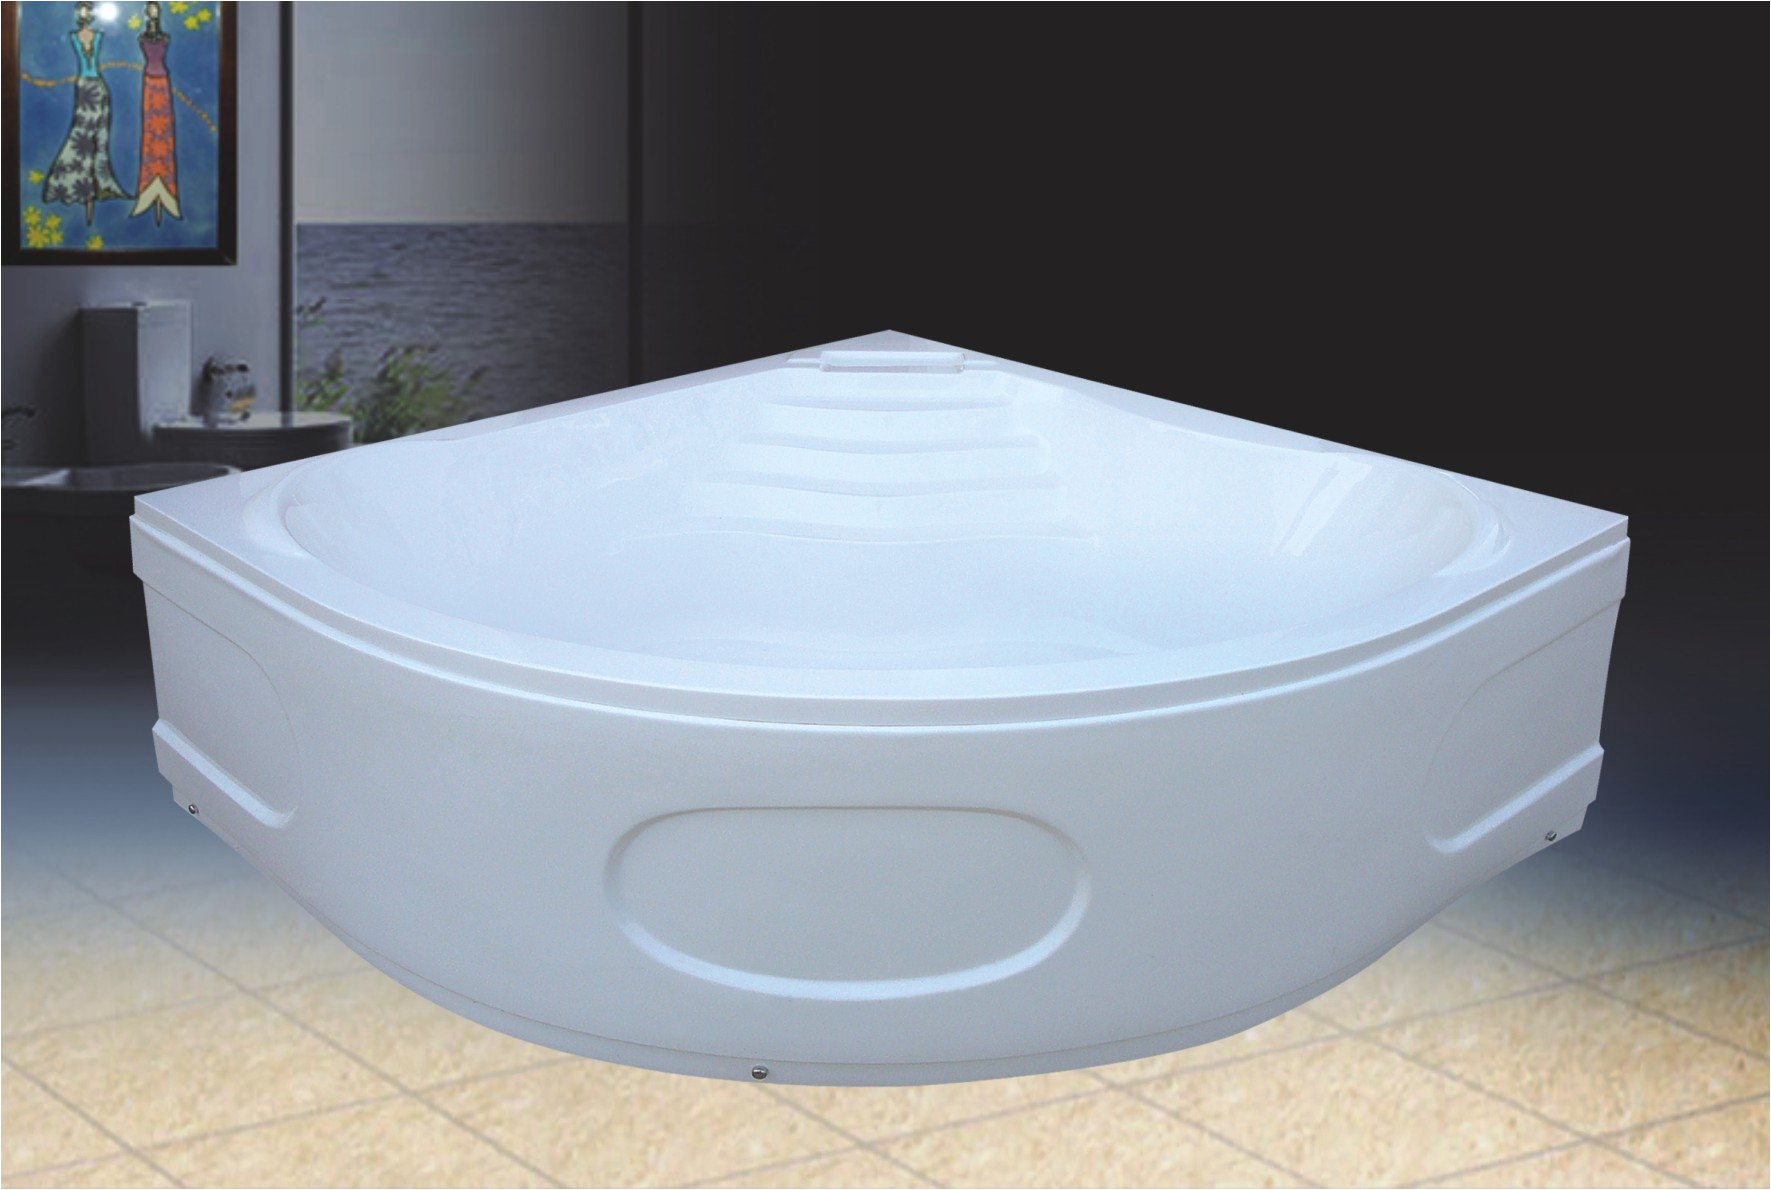 Best Portable Bathtub for Adults top Quality Corner Portable Bathtub for Adults with